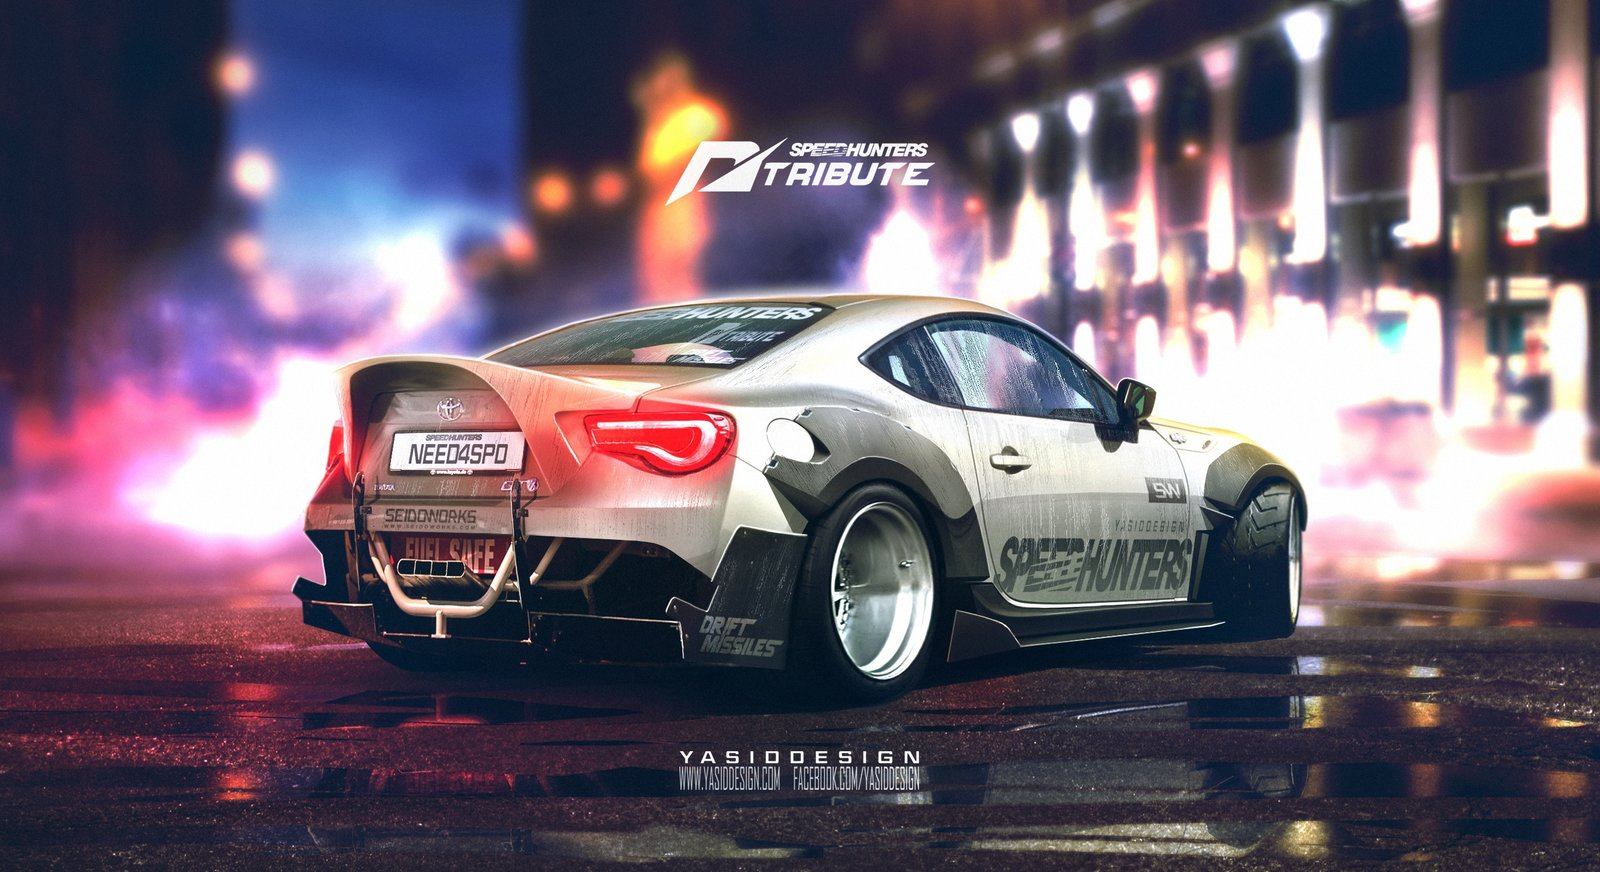 Speedhunters Toyota GT 86 _ Need for speed tribute featuring Seidoworks